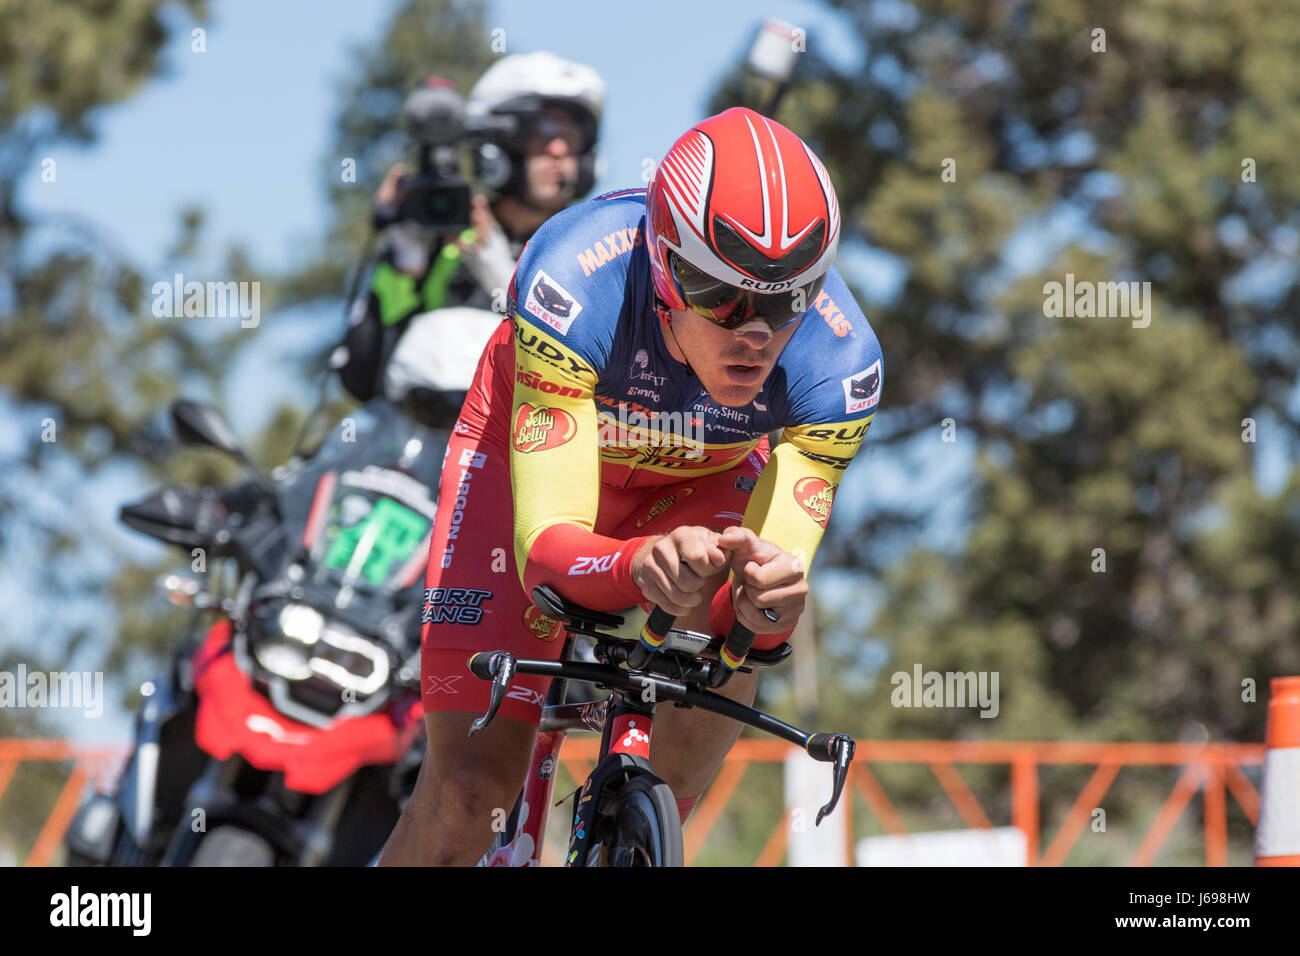 Big Bear, CA, USA. 19th May 2017. Serghei TVETCOV of Team Jelly Belly p/b Maxxis. Tvetcov finished in 20th place. - Stock Image